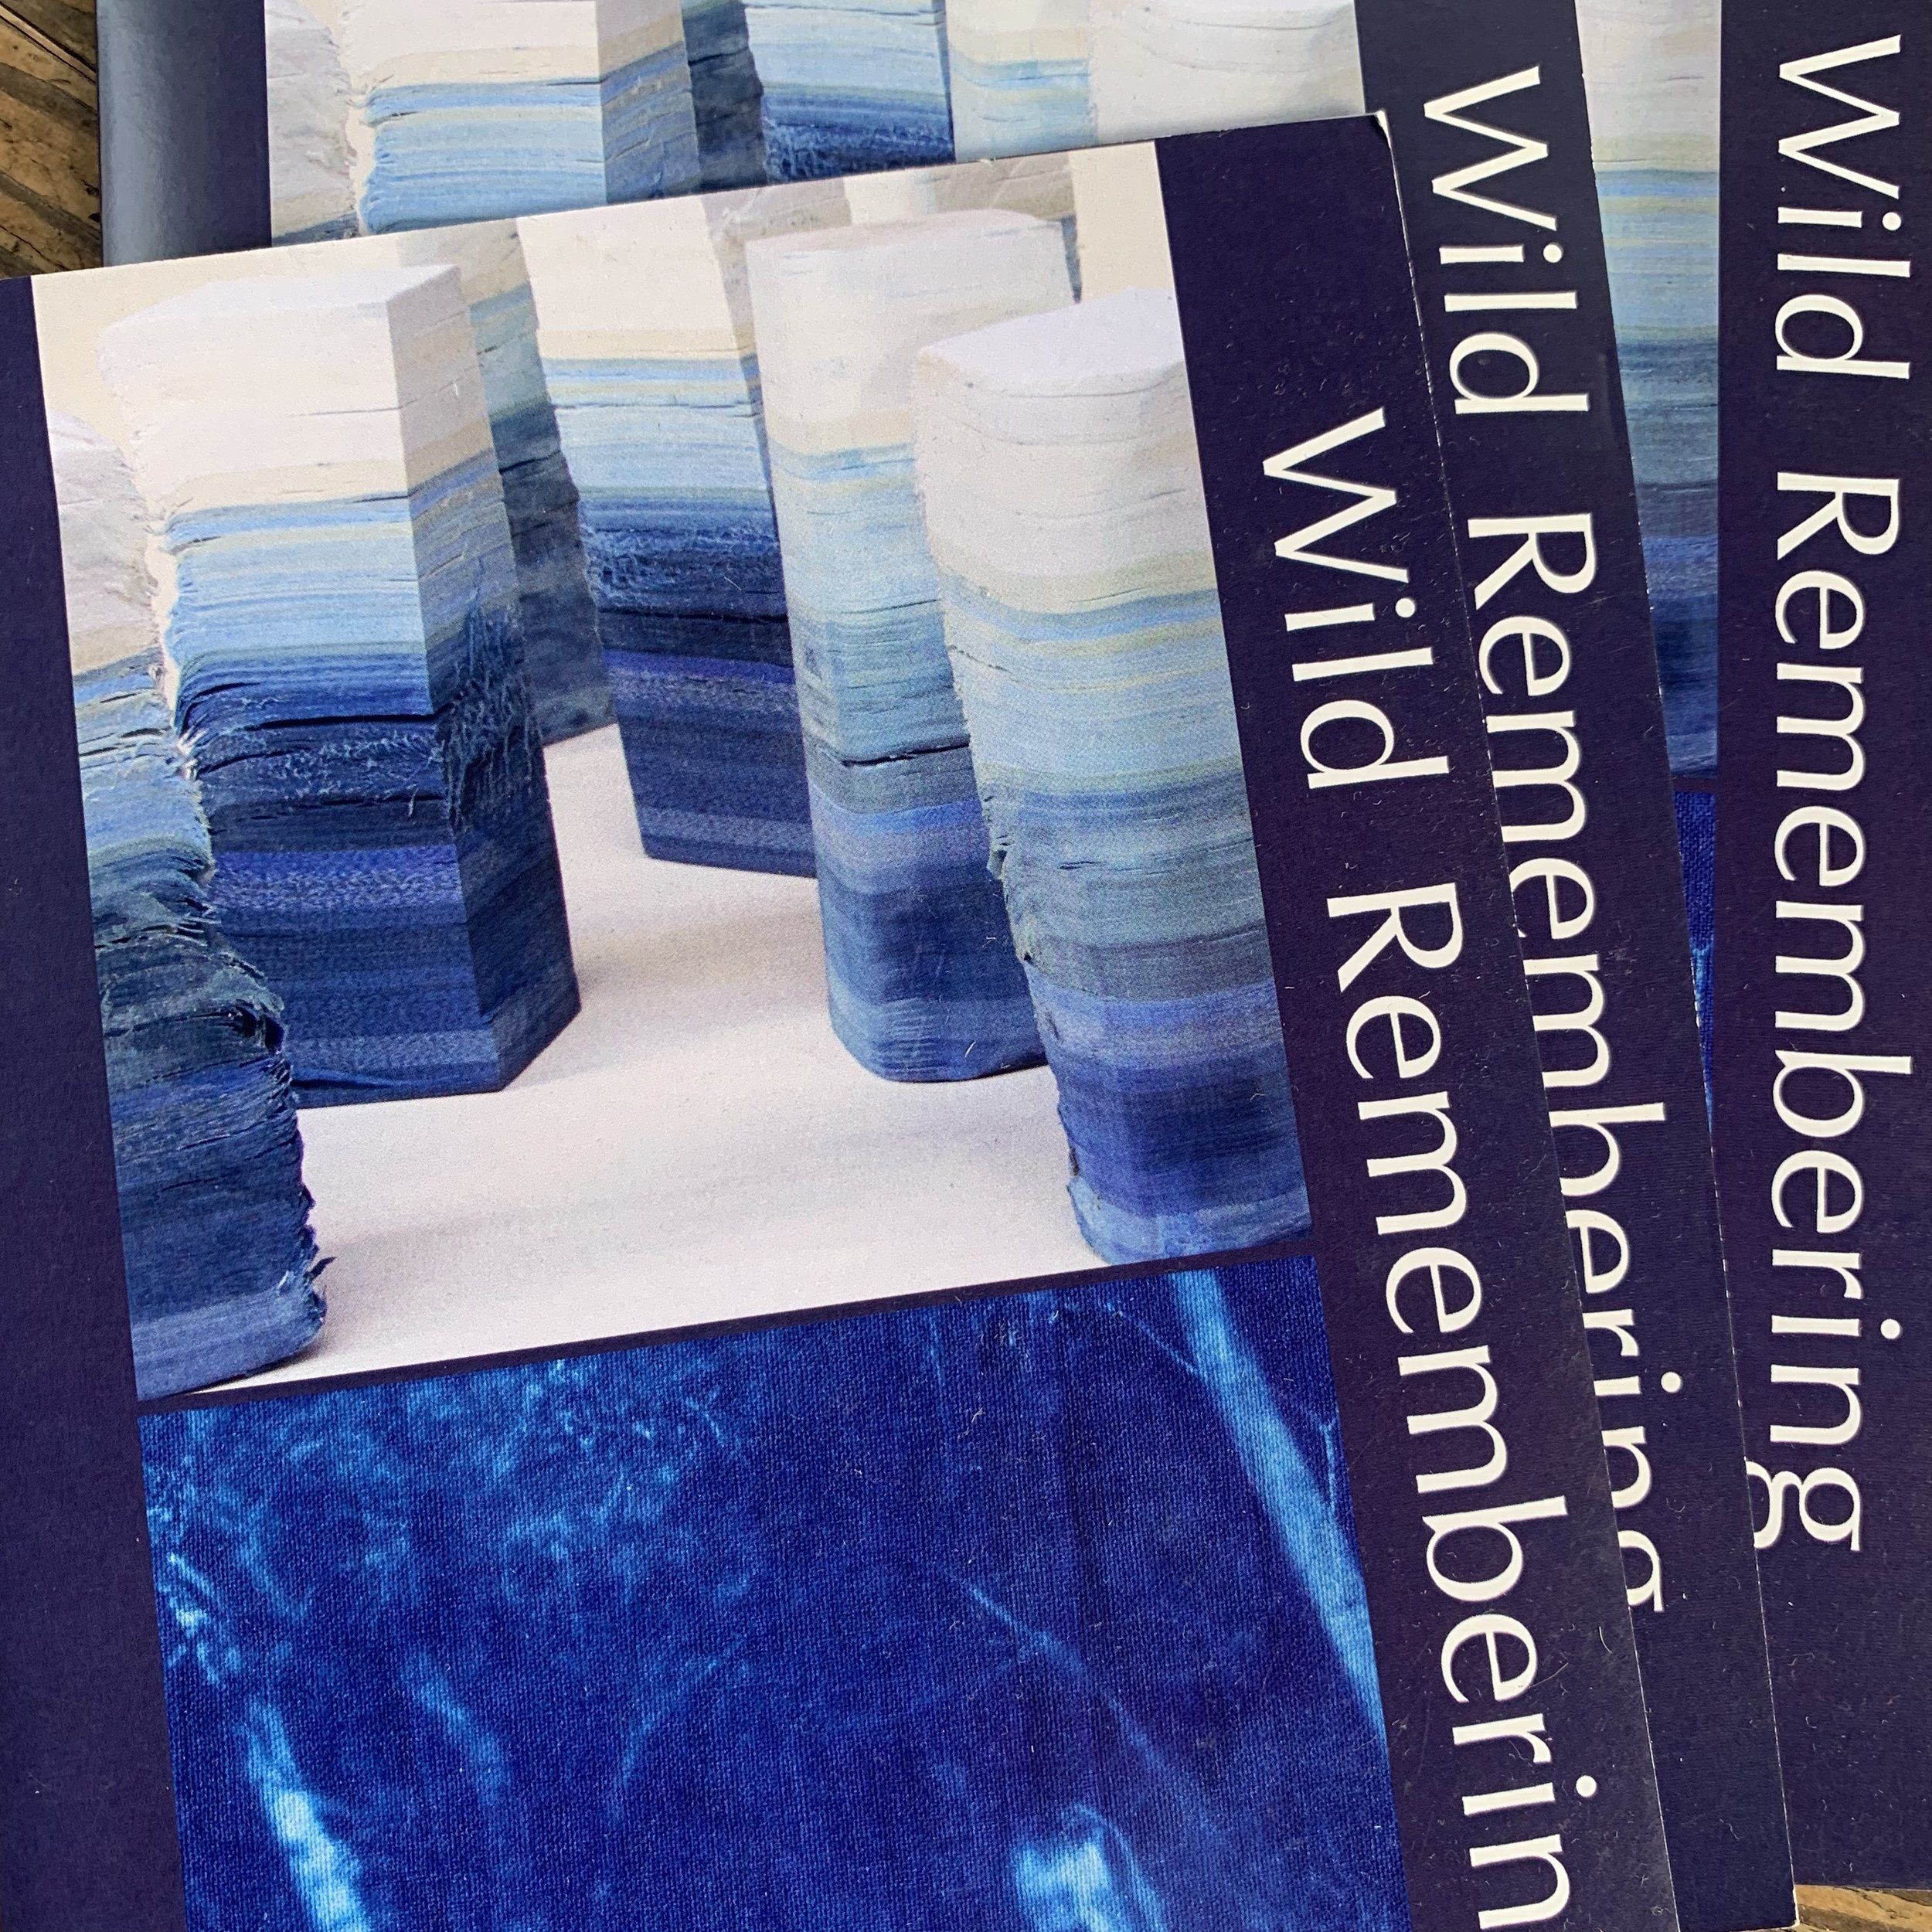 Catalogues produced for Wild Remembering at Webb Gallery.